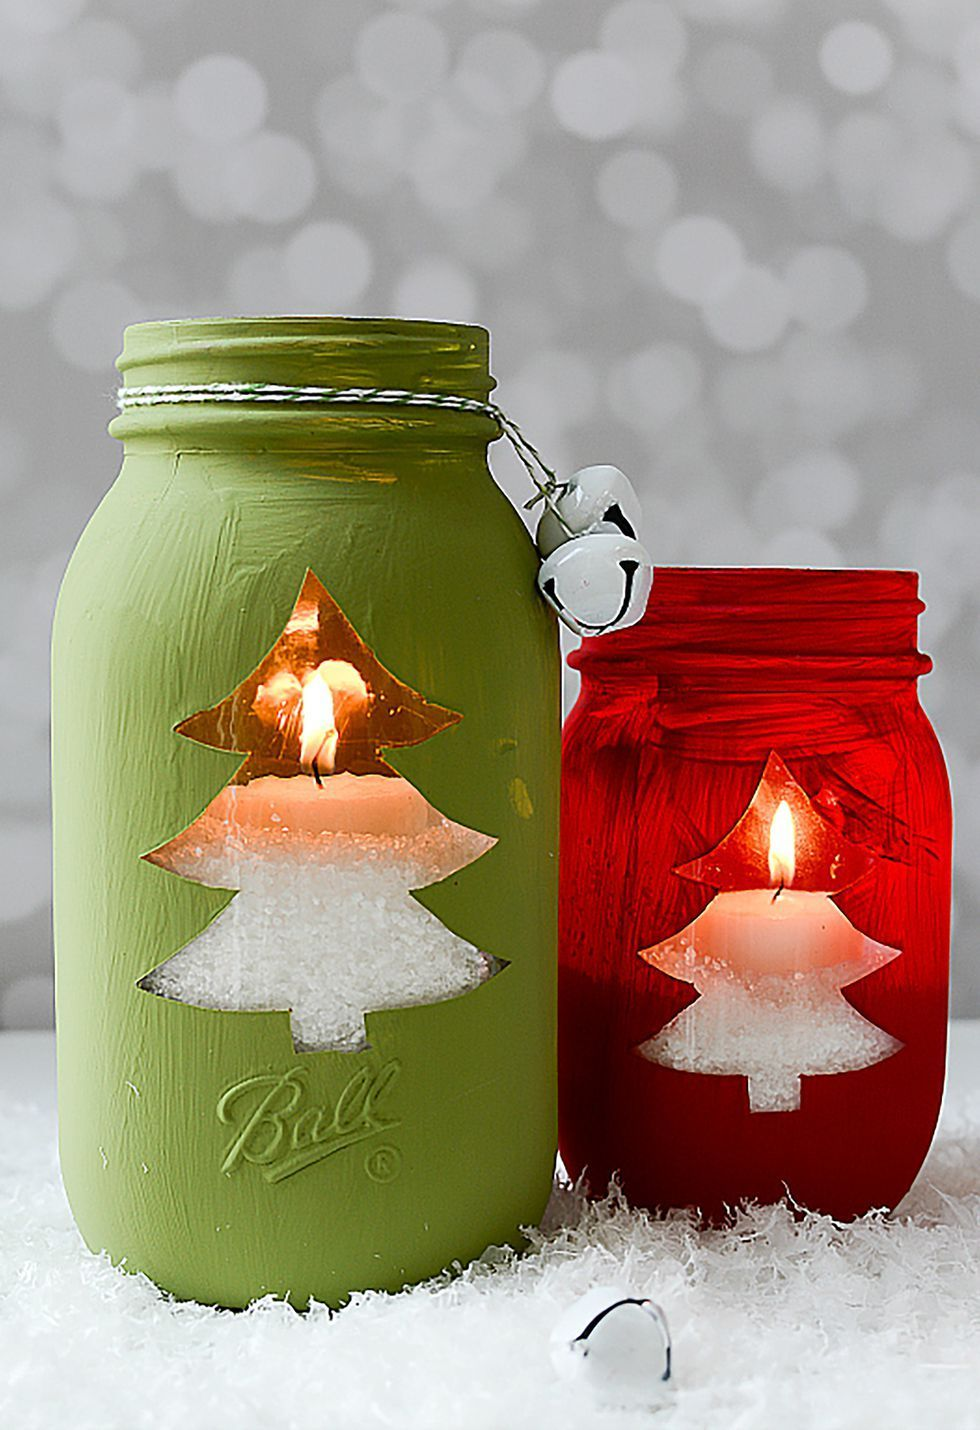 Easy Mason Jar Christmas Crafts That Are Just As Pretty As They Are Fun To Make In 2020 Mason Jar Christmas Crafts Christmas Candles Diy Christmas Jars